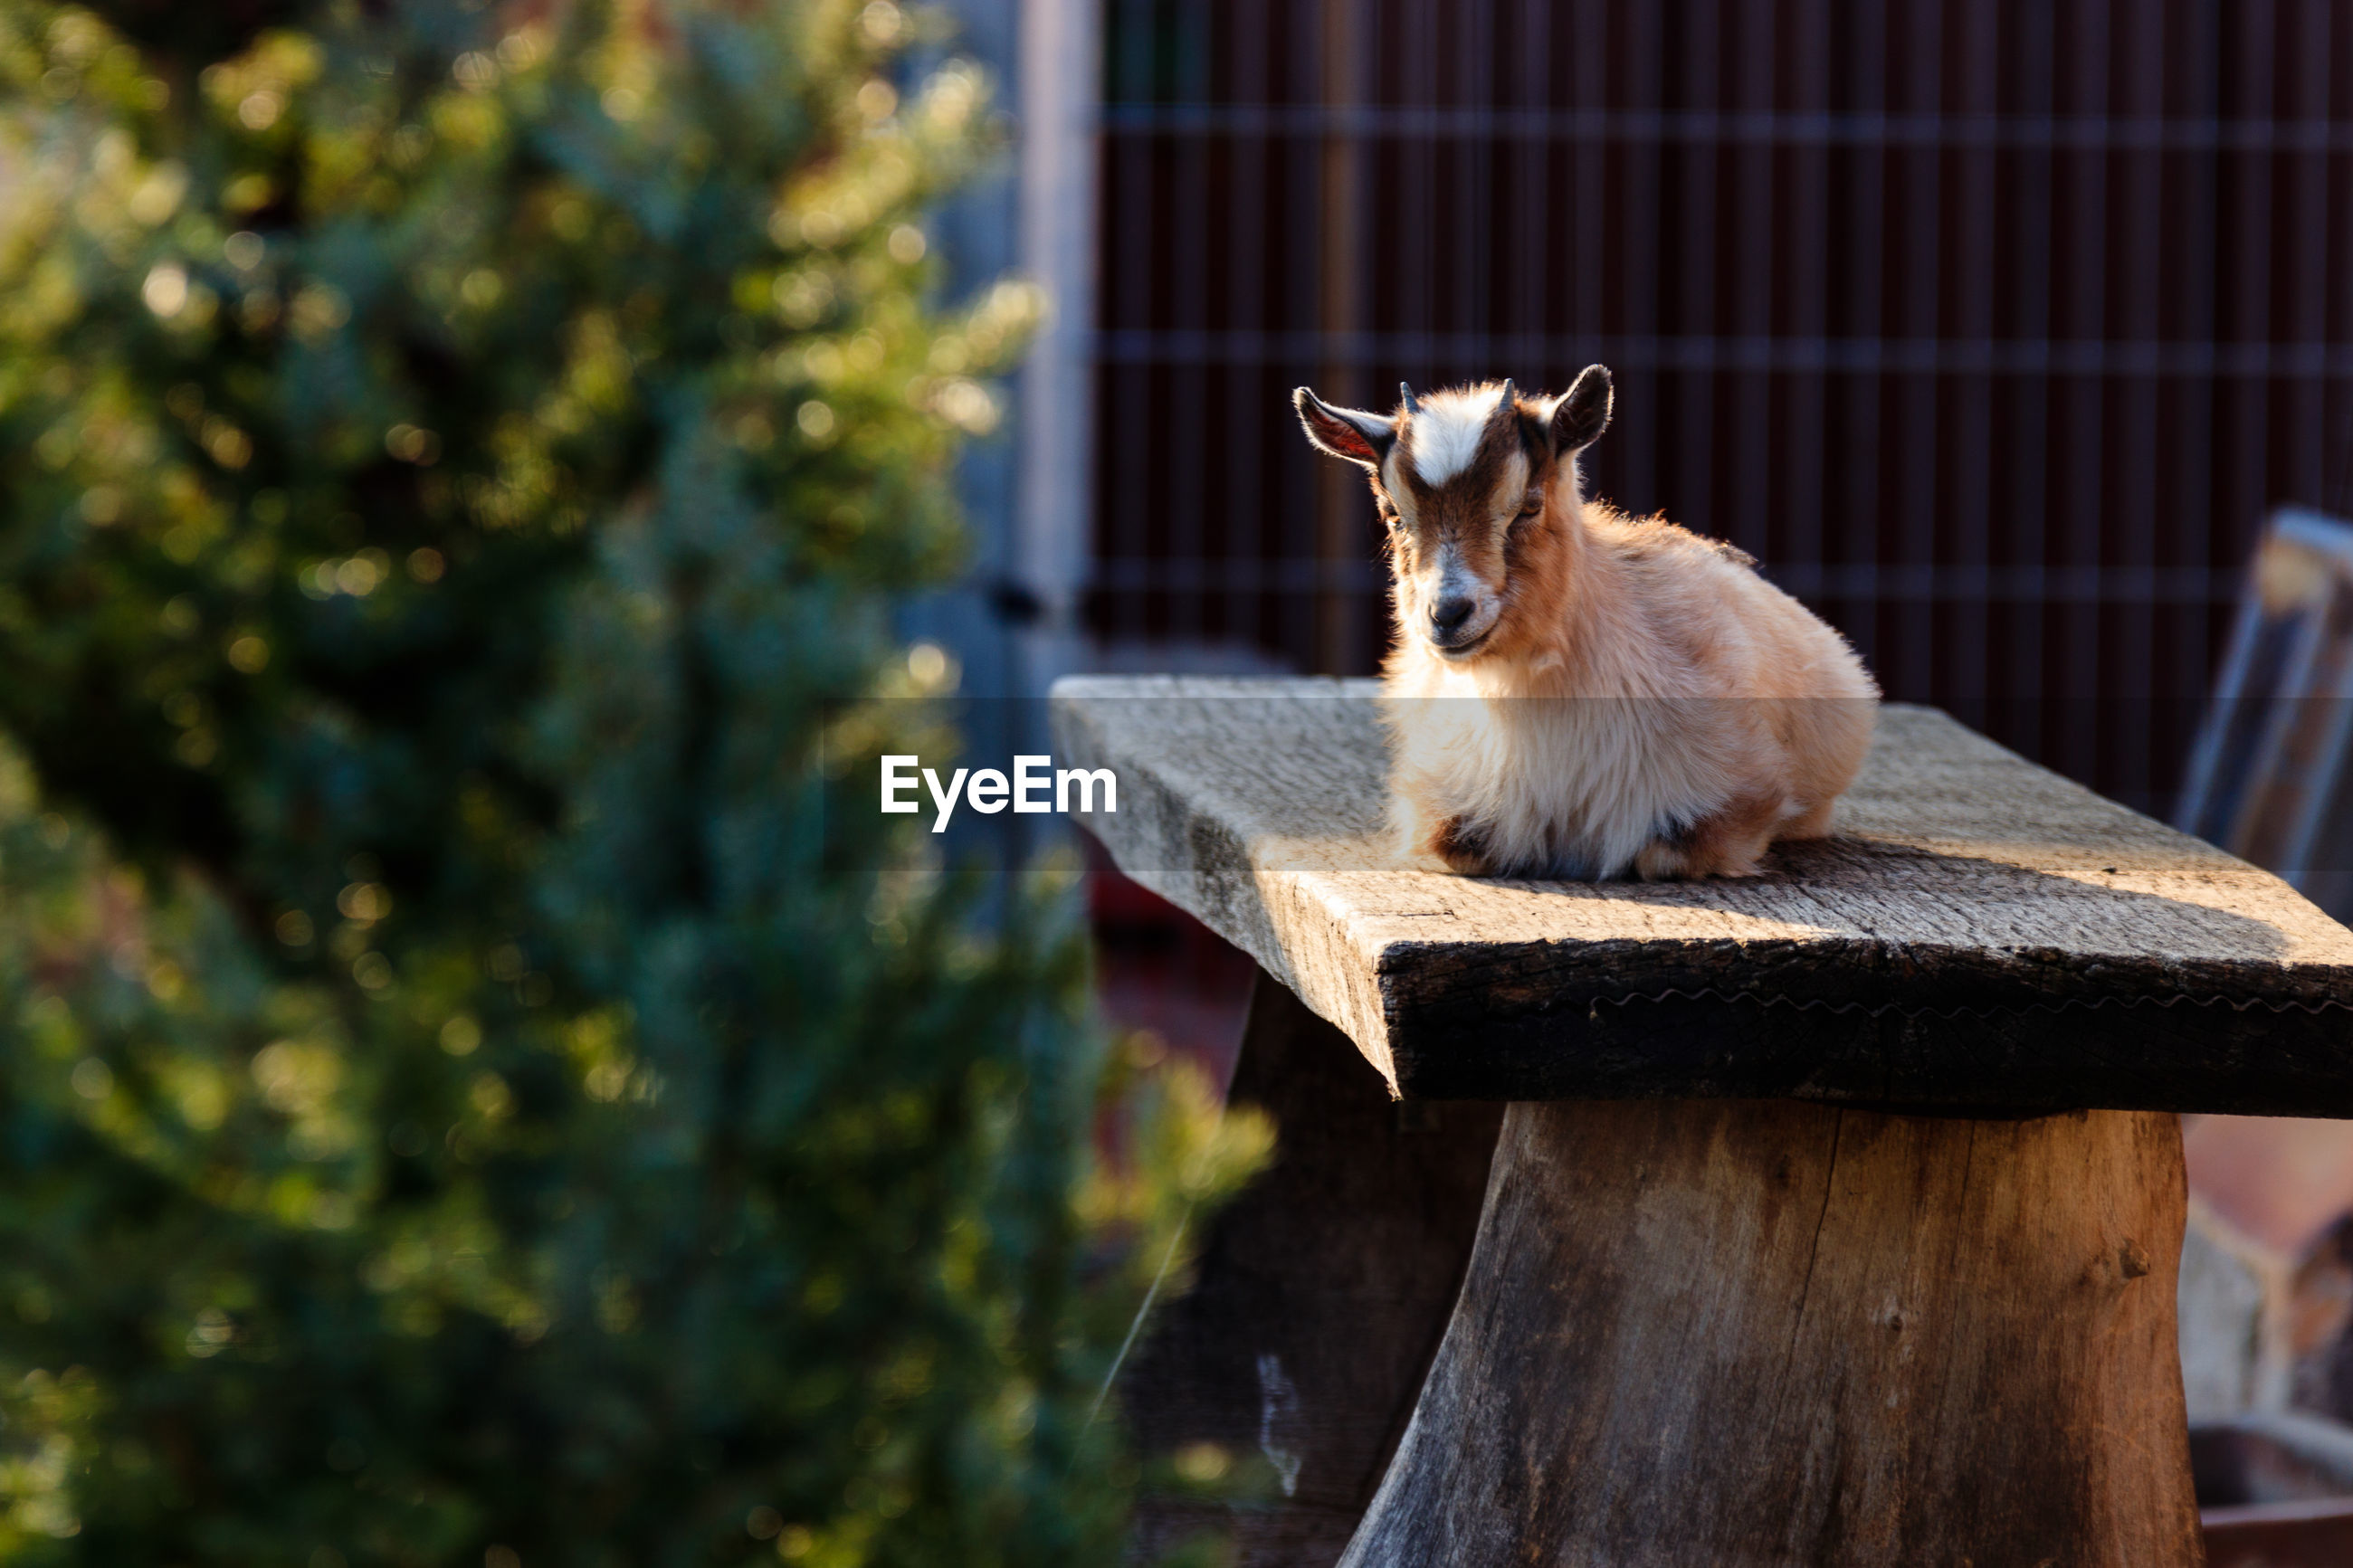 VIEW OF CAT SITTING ON WOOD AGAINST BLURRED BACKGROUND